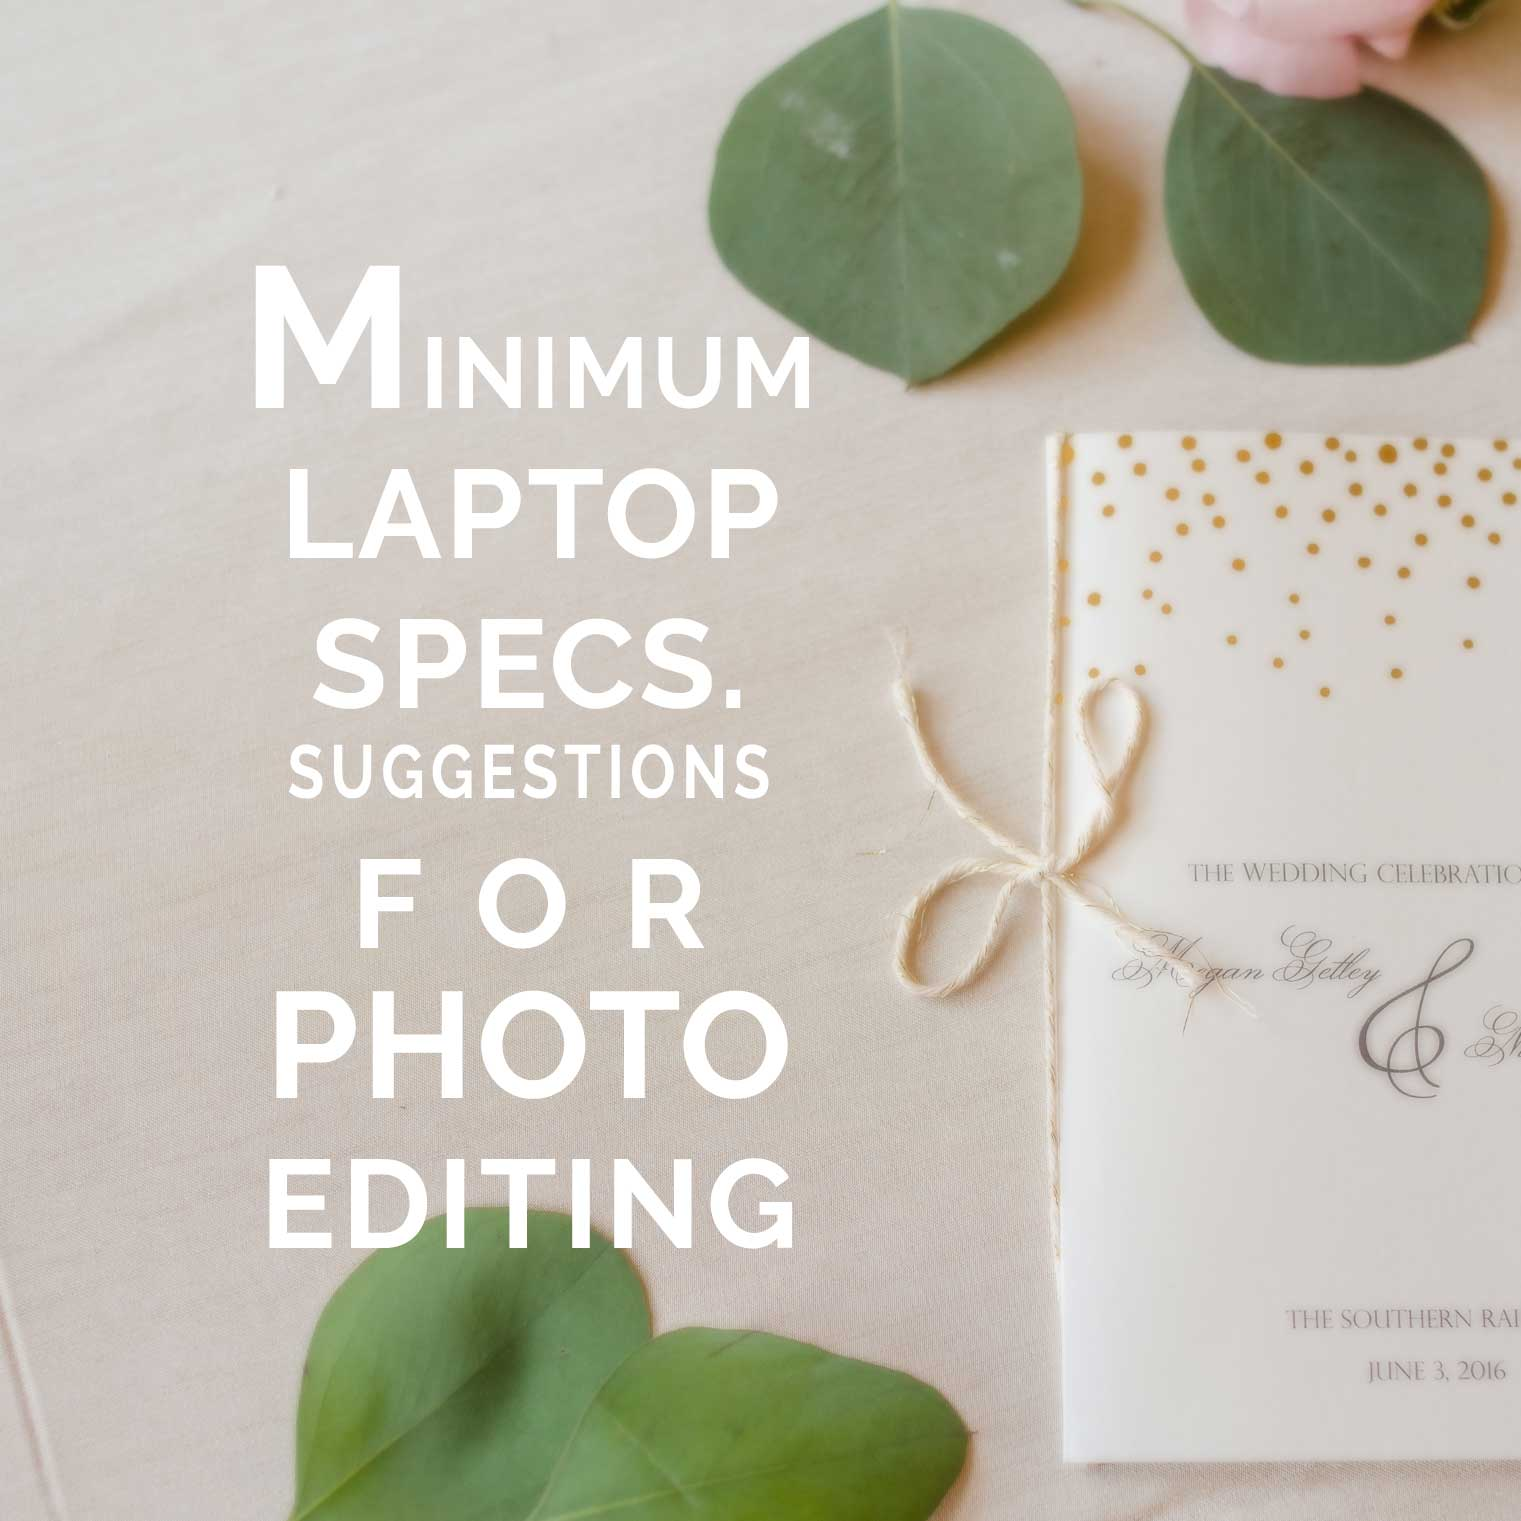 Minimum laptop specs suggestions for photo editing